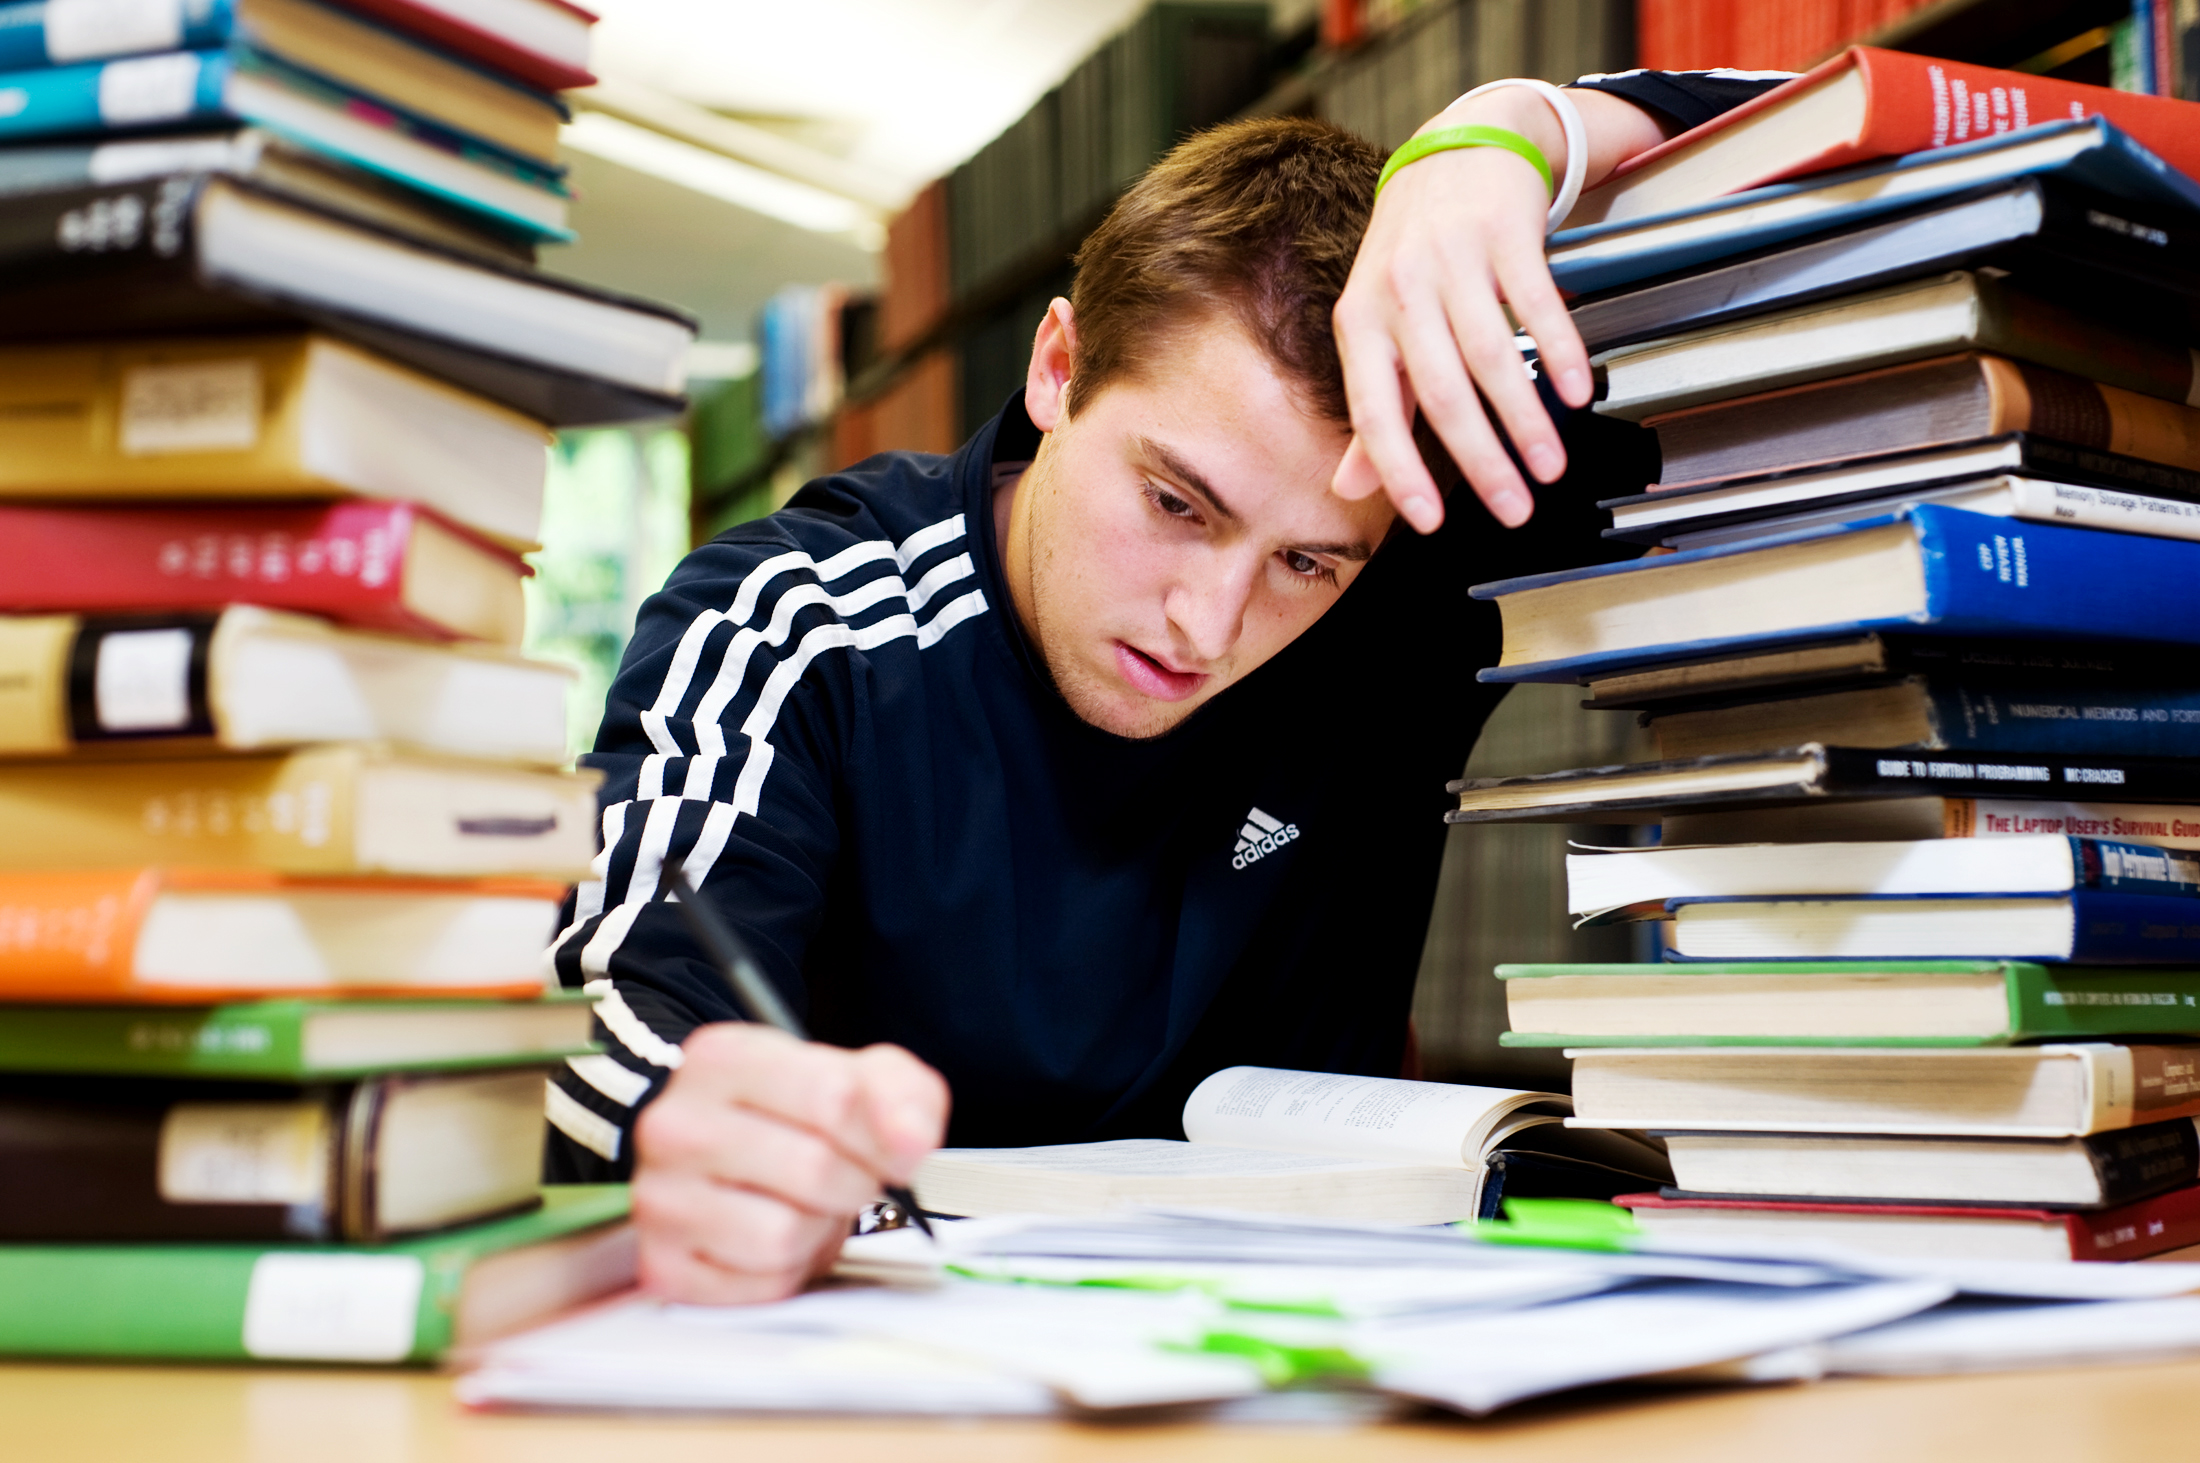 5 Effective Ways To Prevent Burnout In College